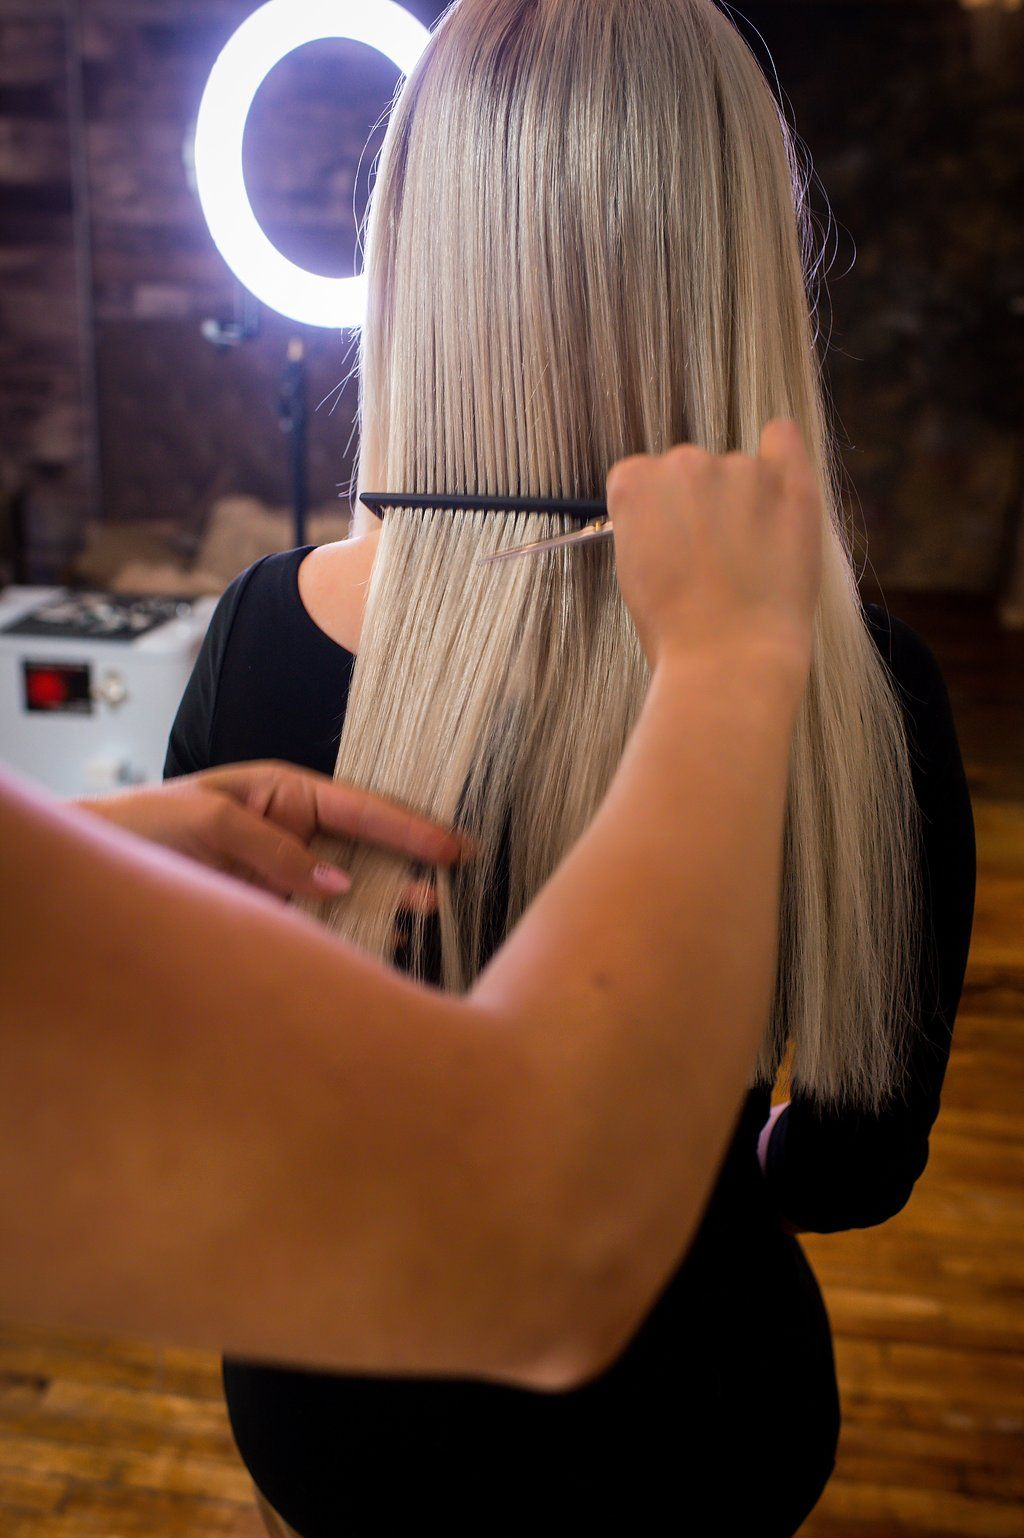 Through our courses, many salons, hair professionals and